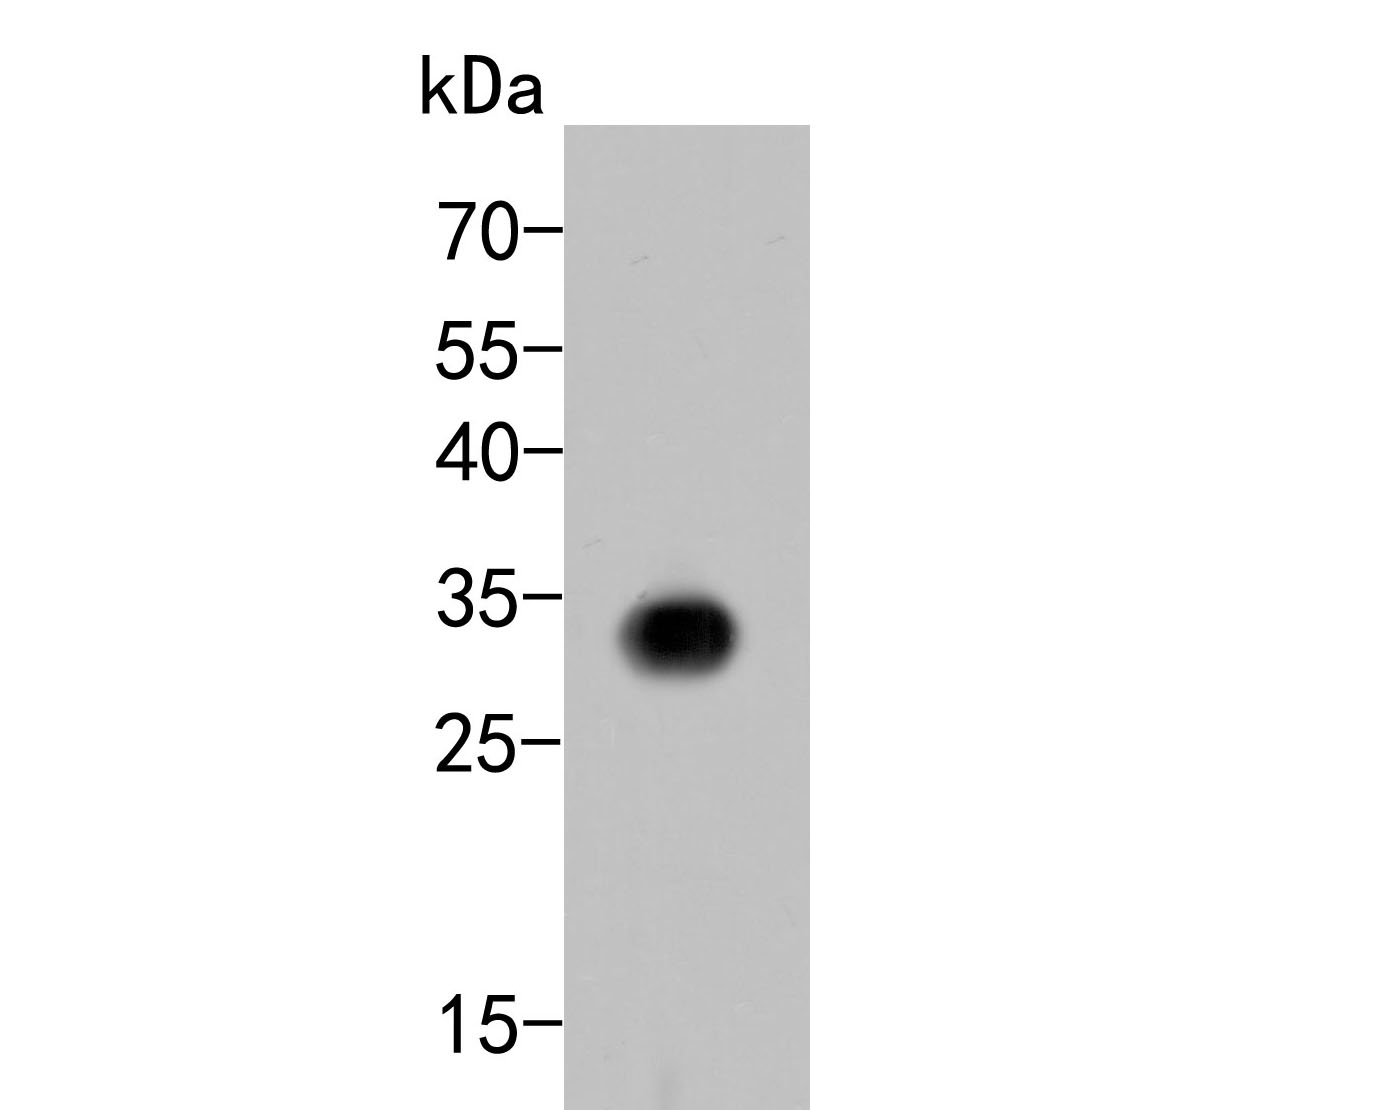 Western blot analysis of CD8 alpha on Siha cell lysates. Proteins were transferred to a PVDF membrane and blocked with 5% BSA in PBS for 1 hour at room temperature. The primary antibody (ER2001-19, 1/500) was used in 5% BSA at room temperature for 2 hours. Goat Anti-Rabbit IgG - HRP Secondary Antibody (HA1001) at 1:5,000 dilution was used for 1 hour at room temperature.